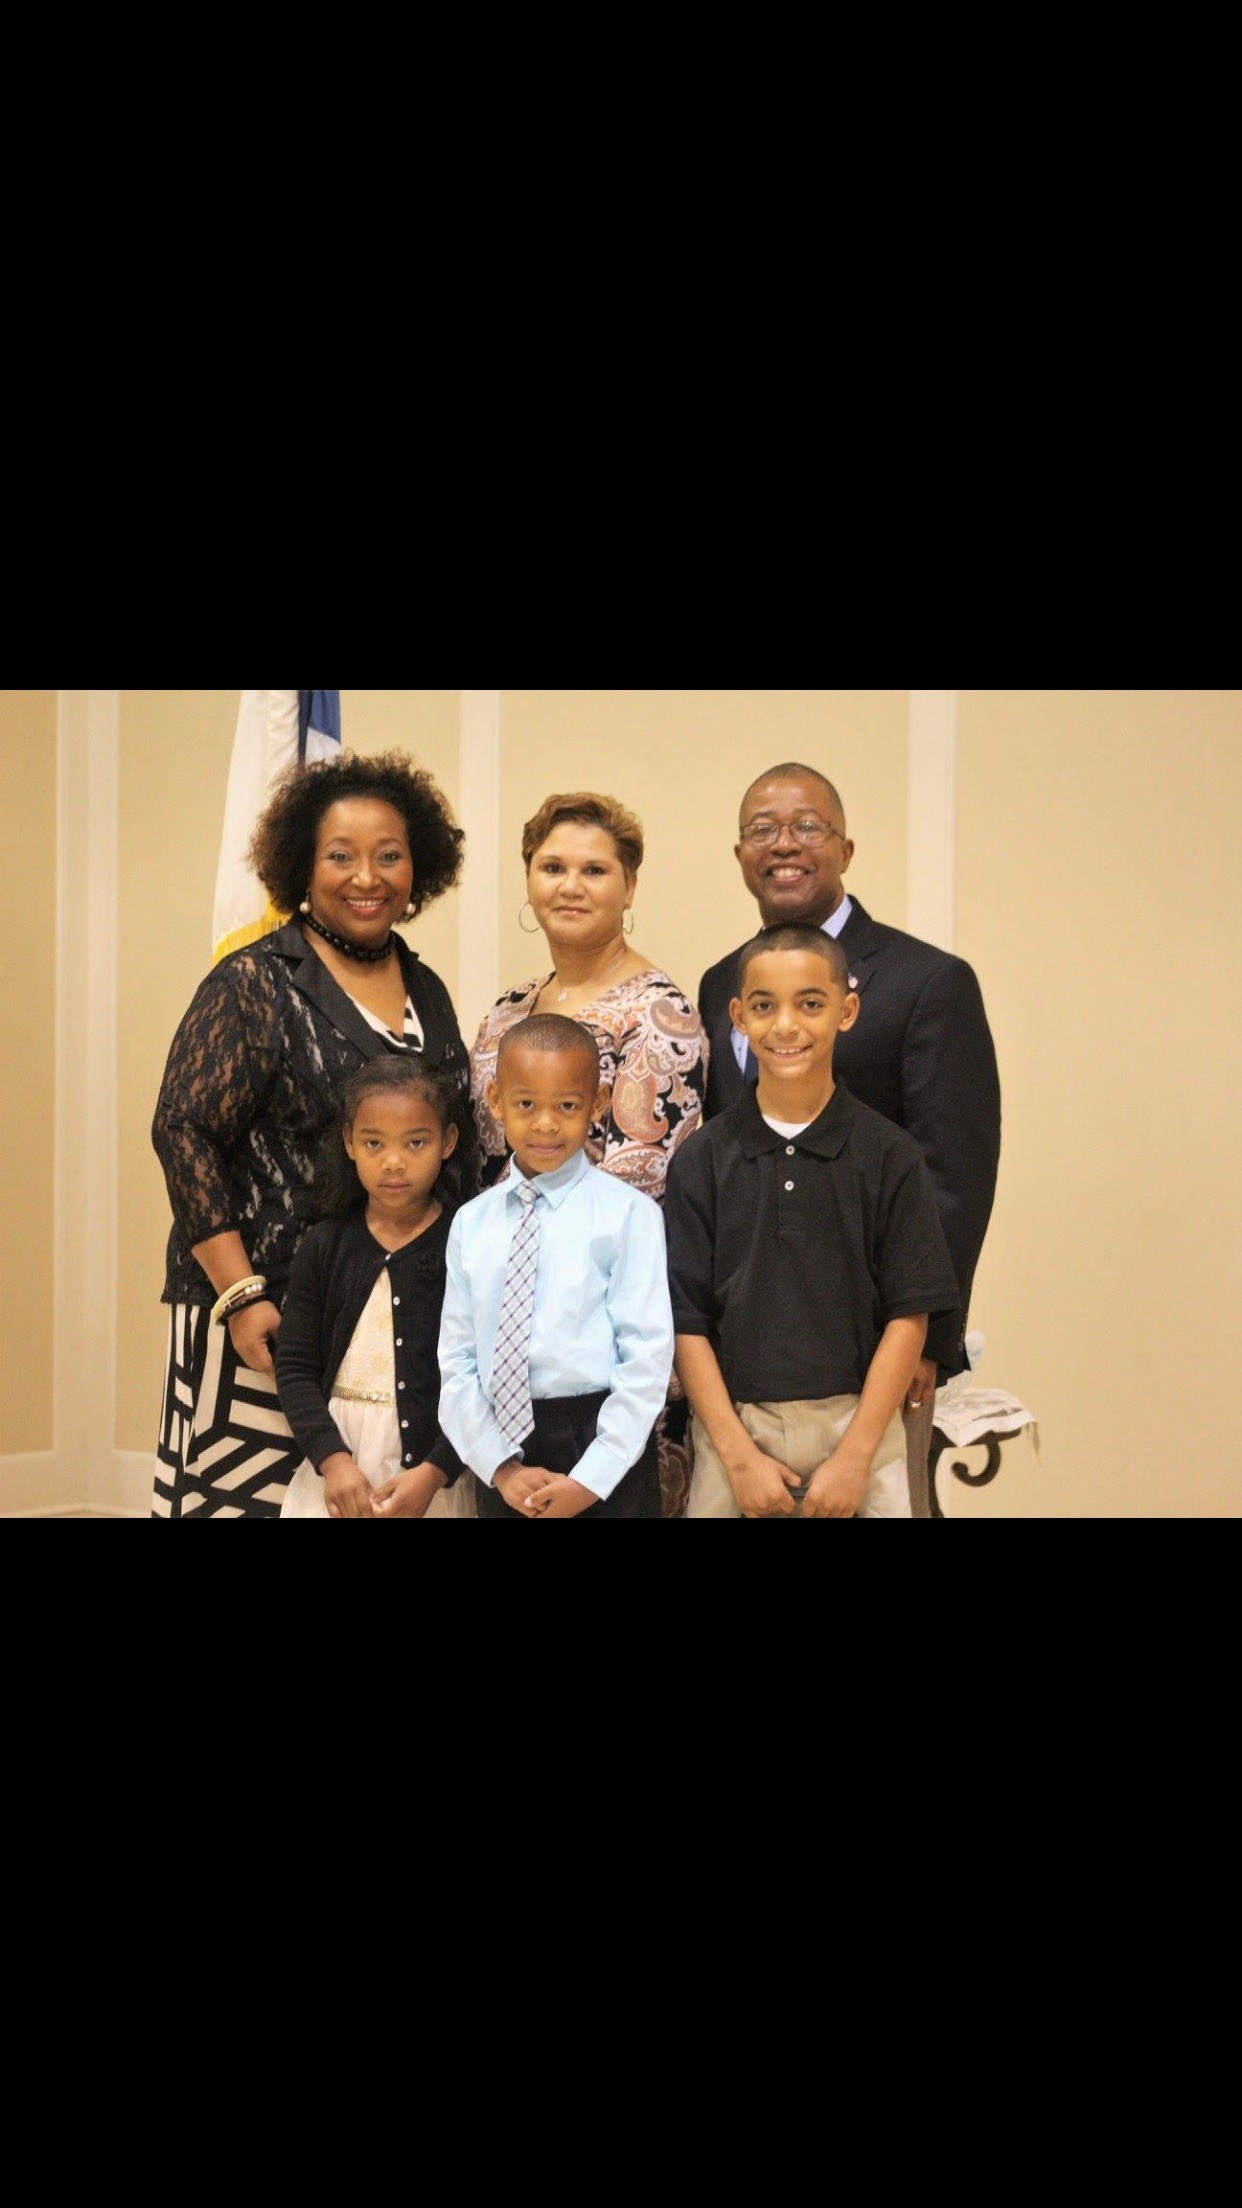 Superintendent, wife and my family